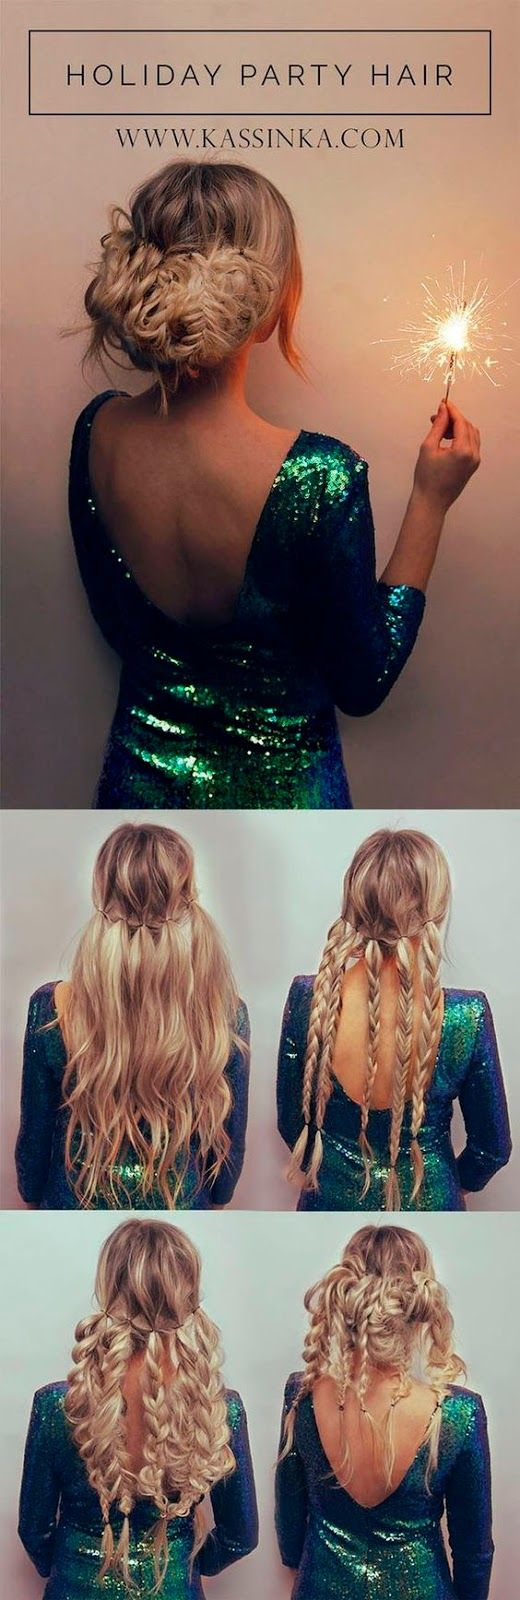 Preparing for the holidays best hairstyles and outfits